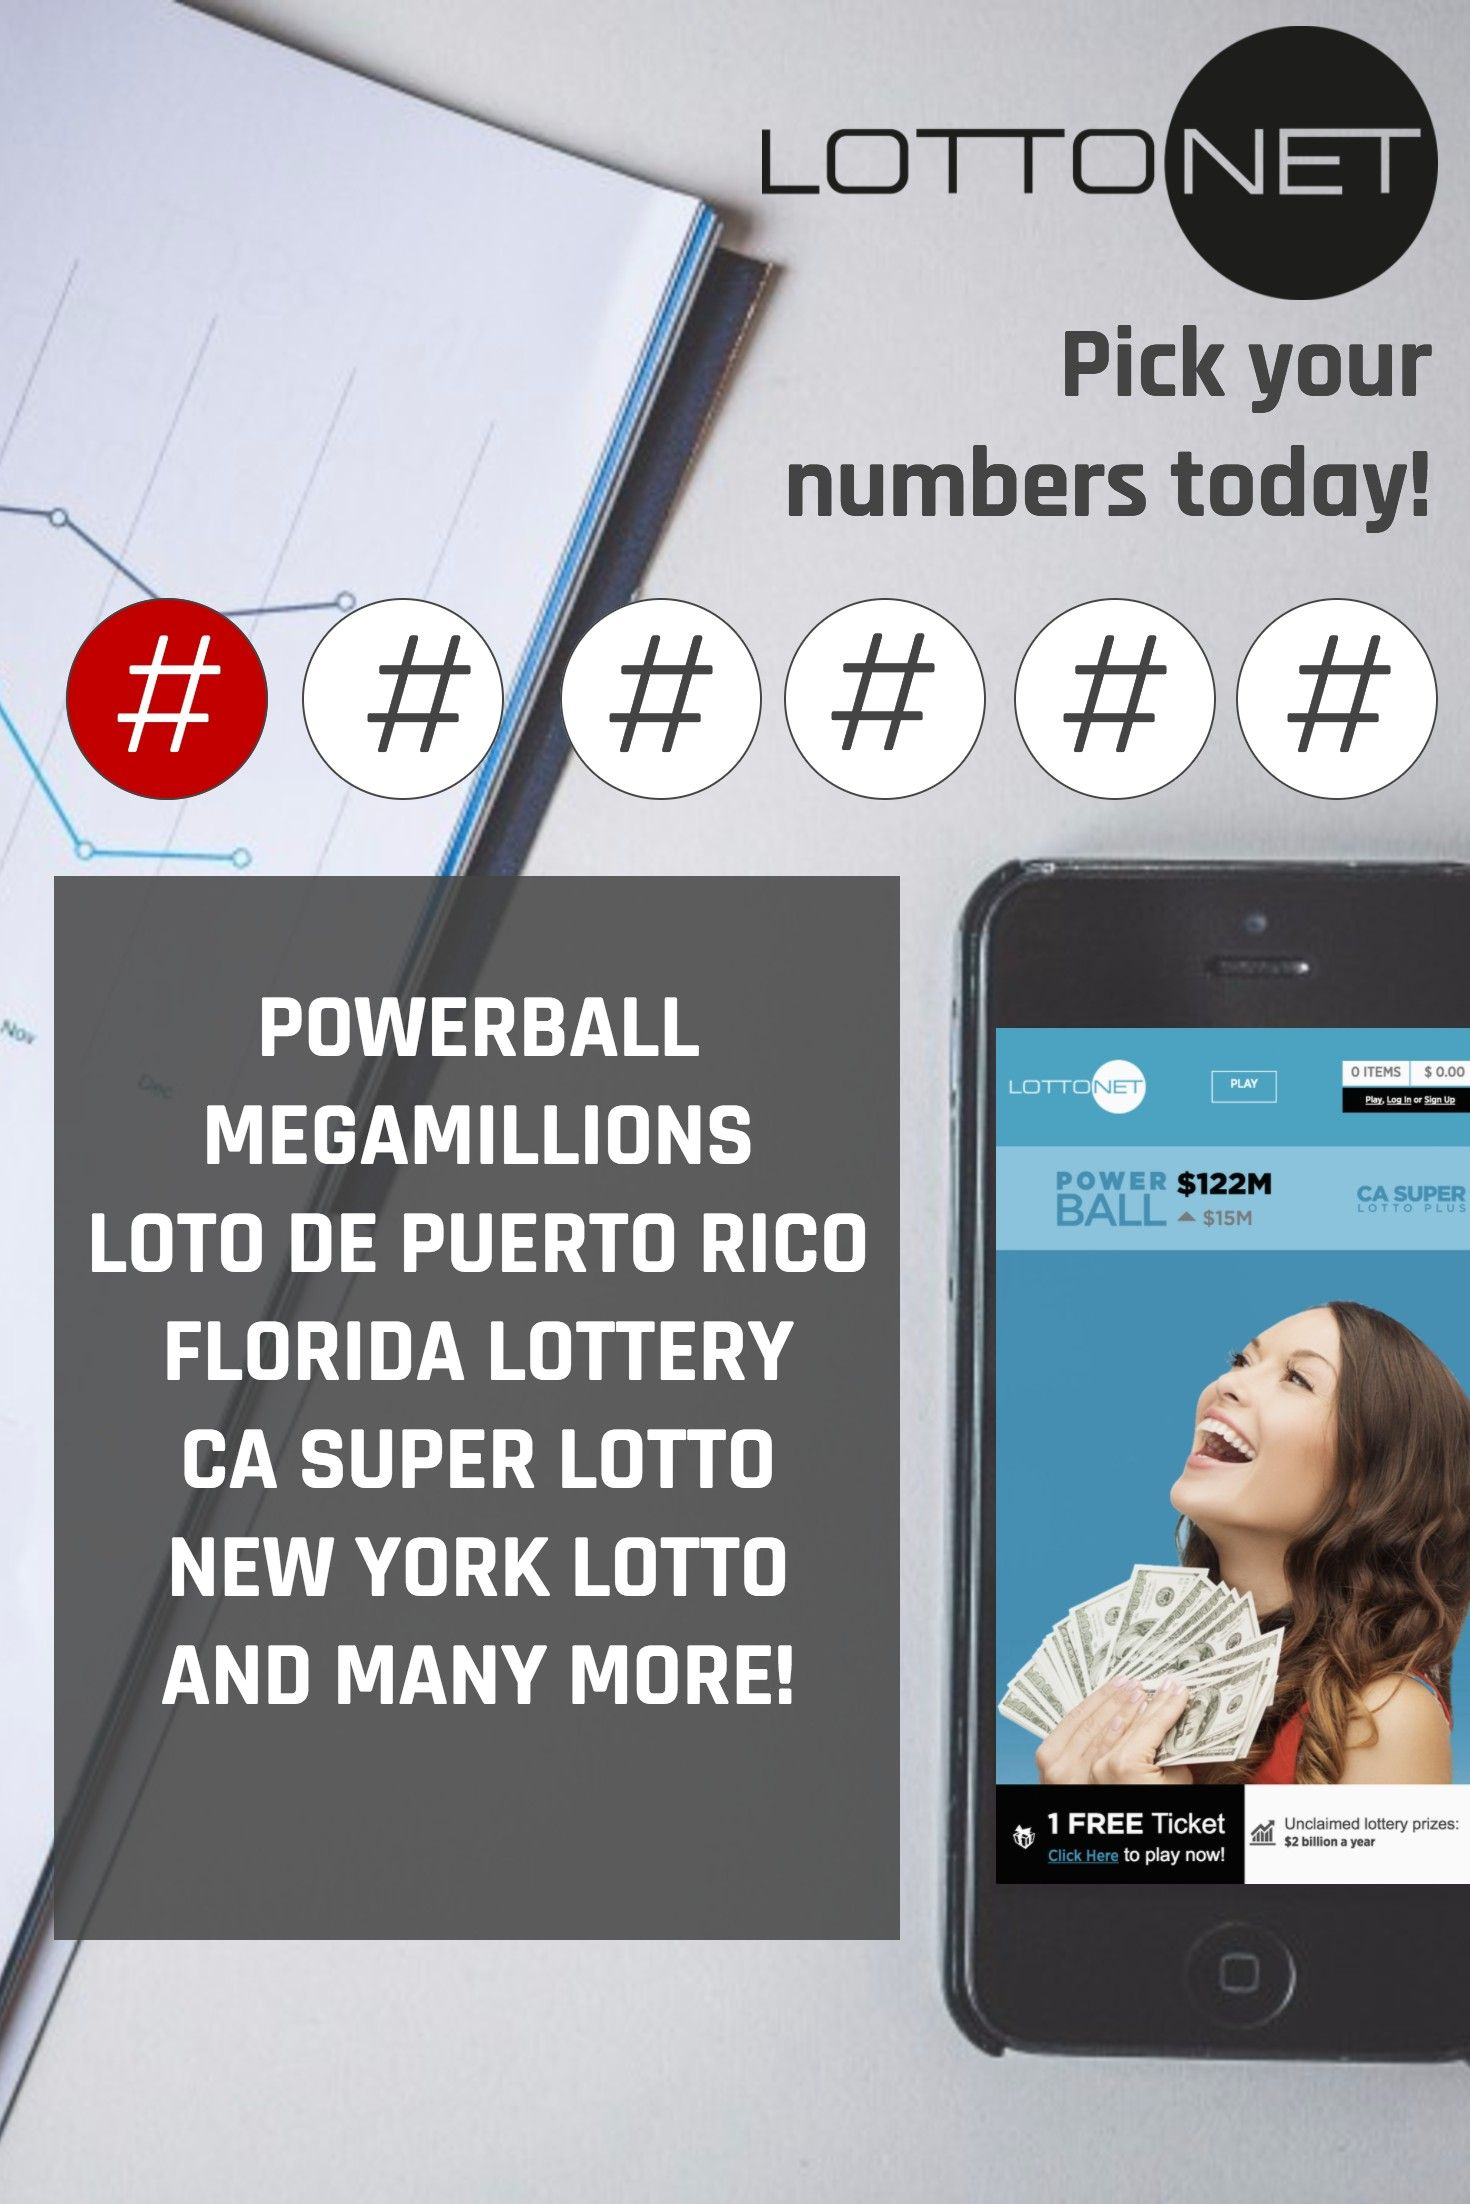 Playing the #LOTTO with LottoNet is easy, fast & convenient - Simply choose your #lottery, pick your numbers, and confirm for a chance to become a millionaire TODAY! www.getlottonet.com Powerball Mega Millions Florida Lottery Loto de Puerto Rico and many more available!